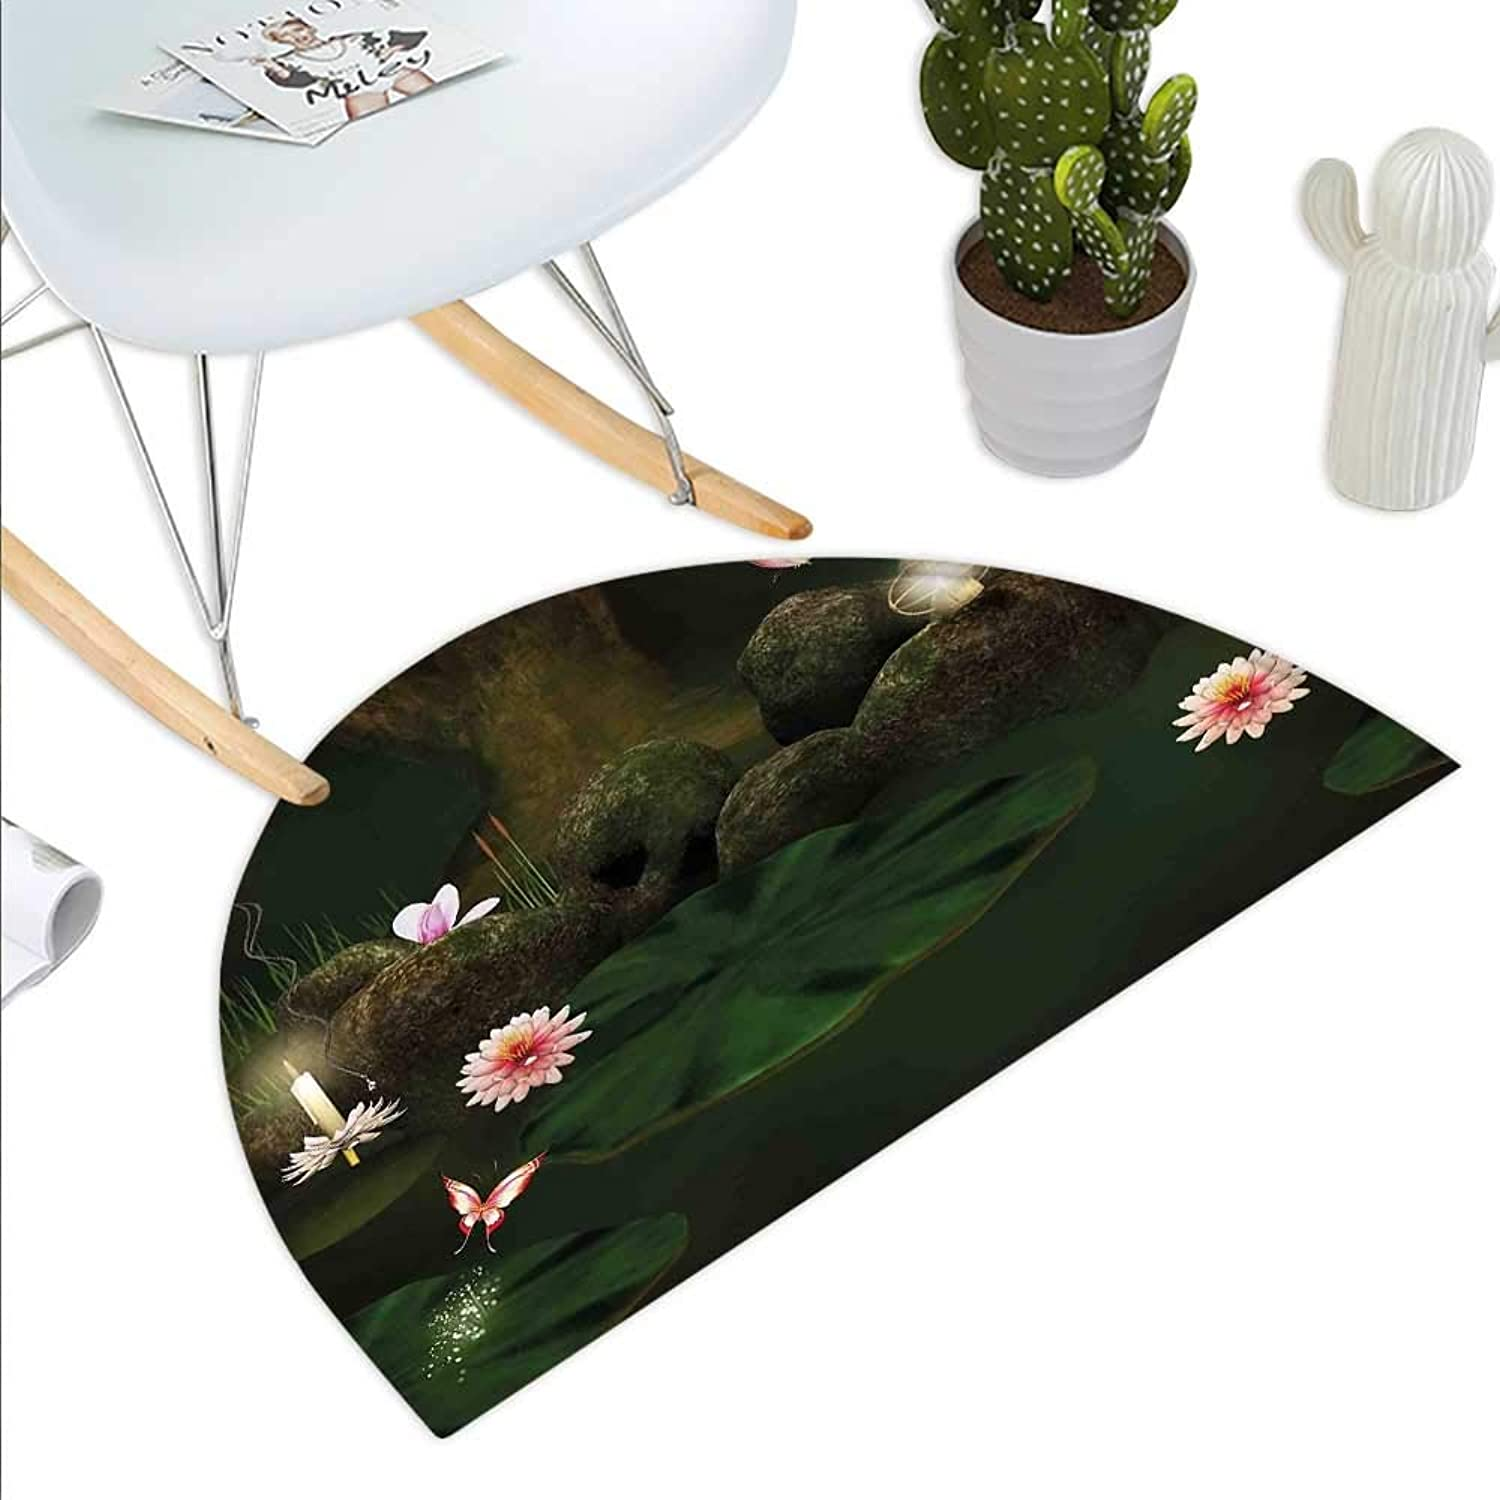 Magical Semicircle Doormat Mystical Secret Place Deep Dark in Forest with Butterflies and Flowers Zen Image Halfmoon doormats H 35.4  xD 53.1  Green Brown